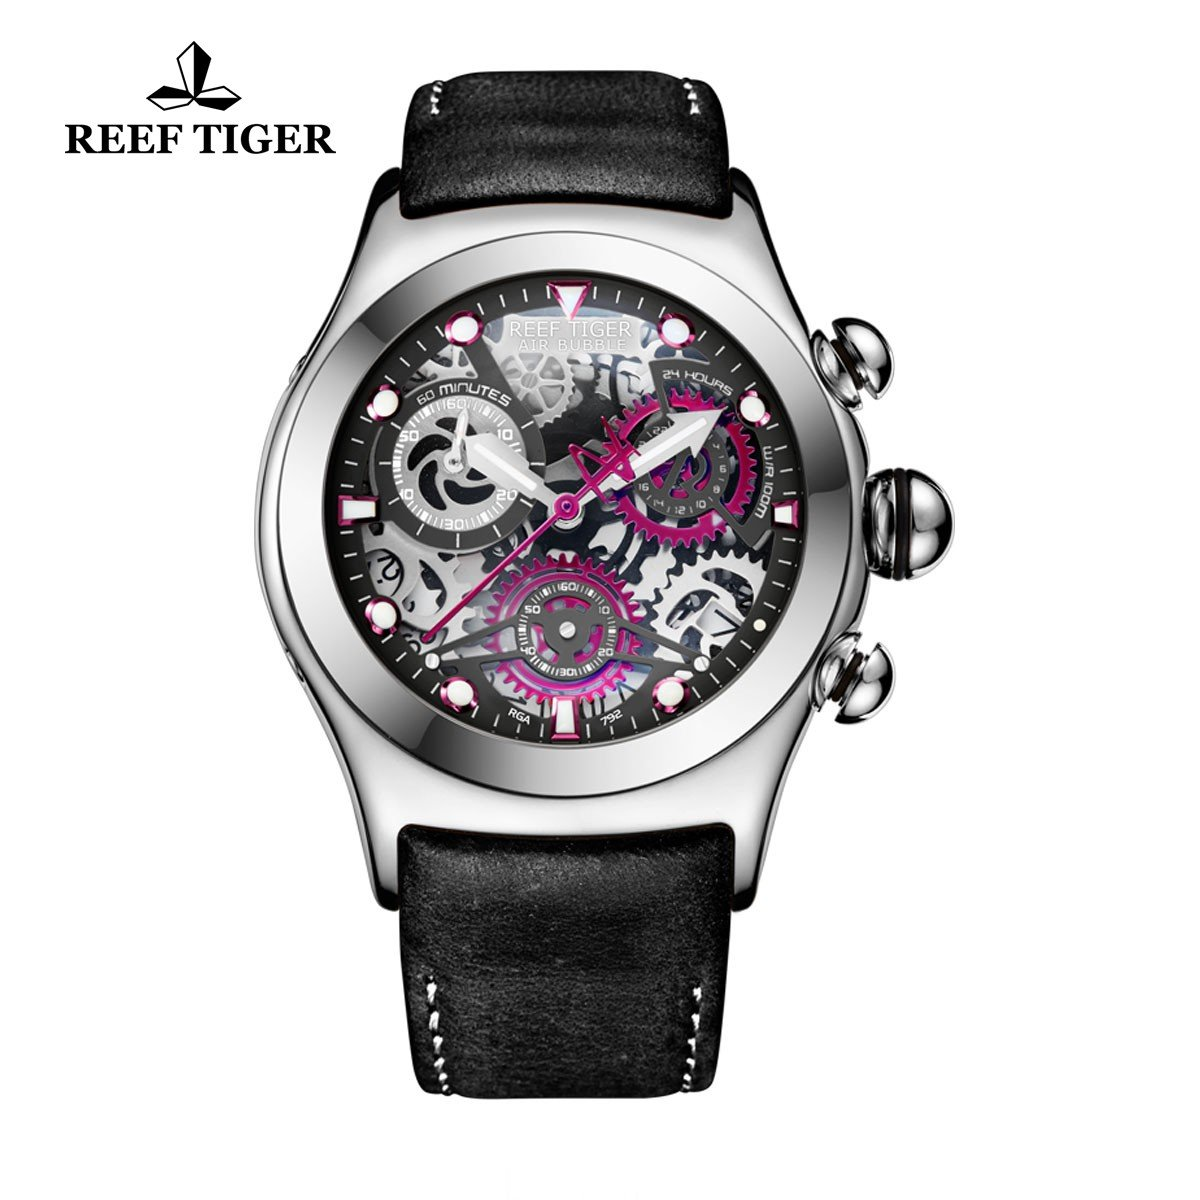 Reef Tiger Chronograph Sport Watch with Date 316L Steel Black Skeleton Dial Luminous Watches RGA792 by REEF TIGER